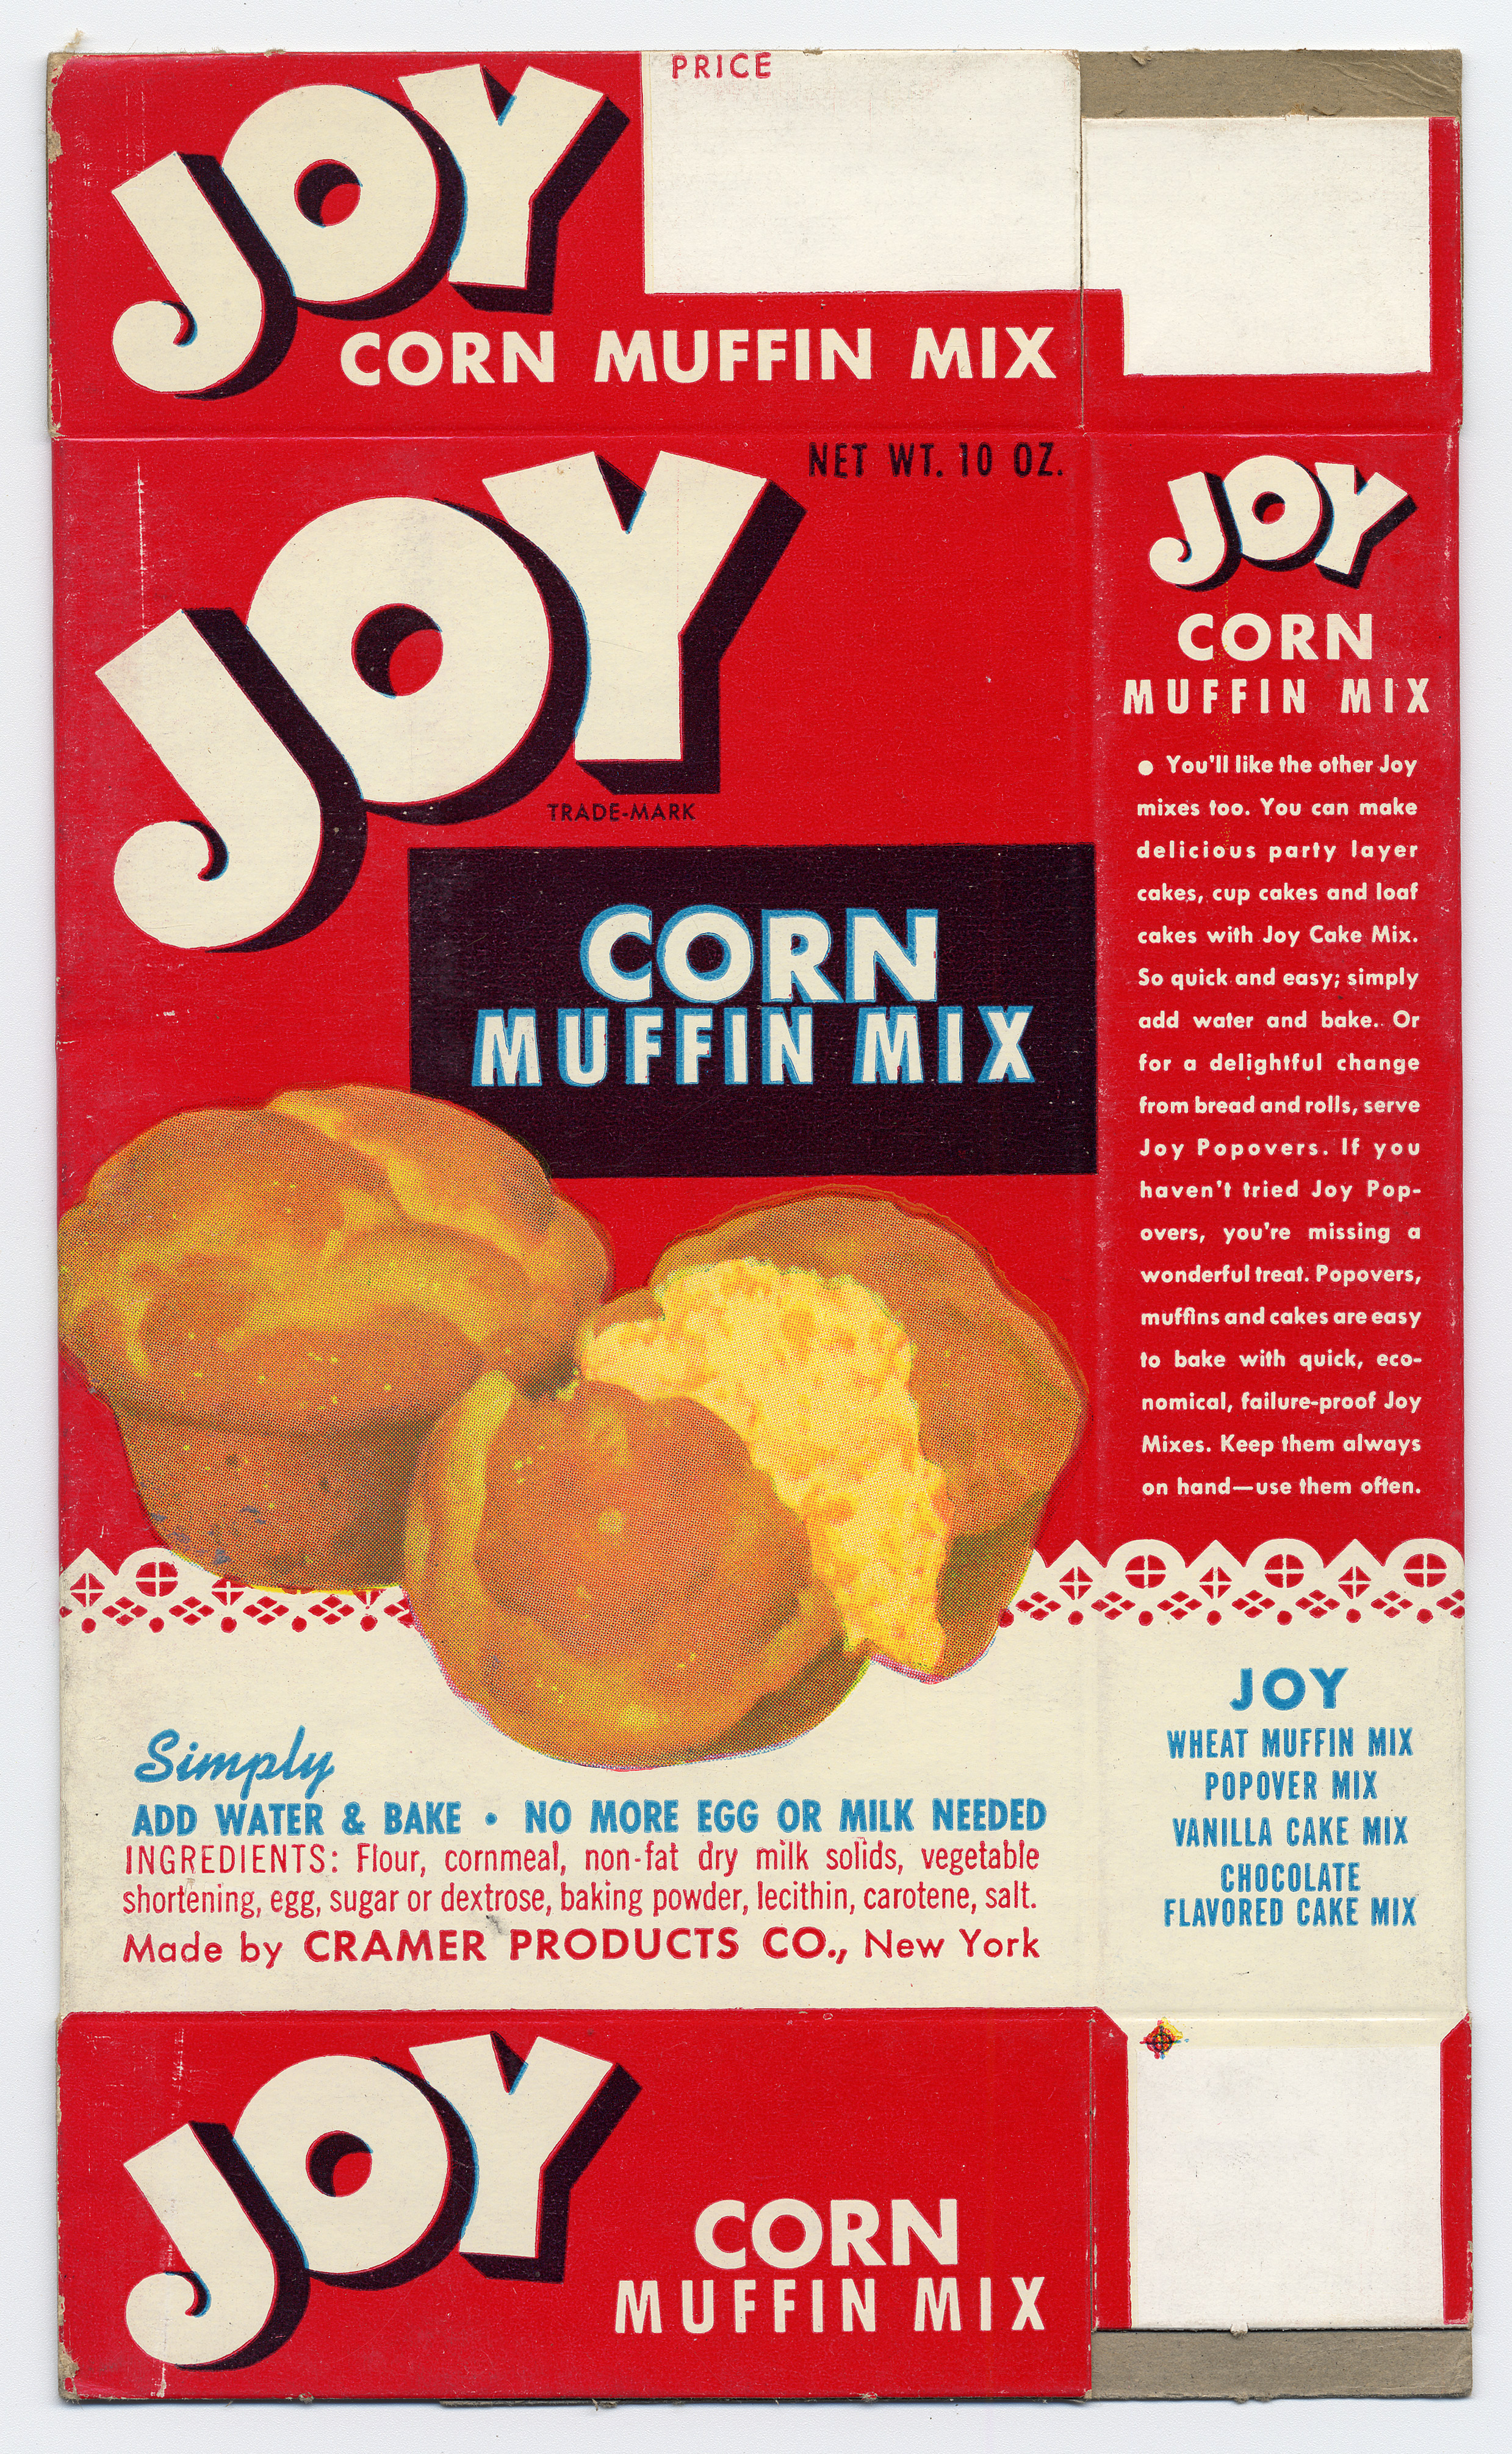 Image of a Joy brand corn muffin mix box